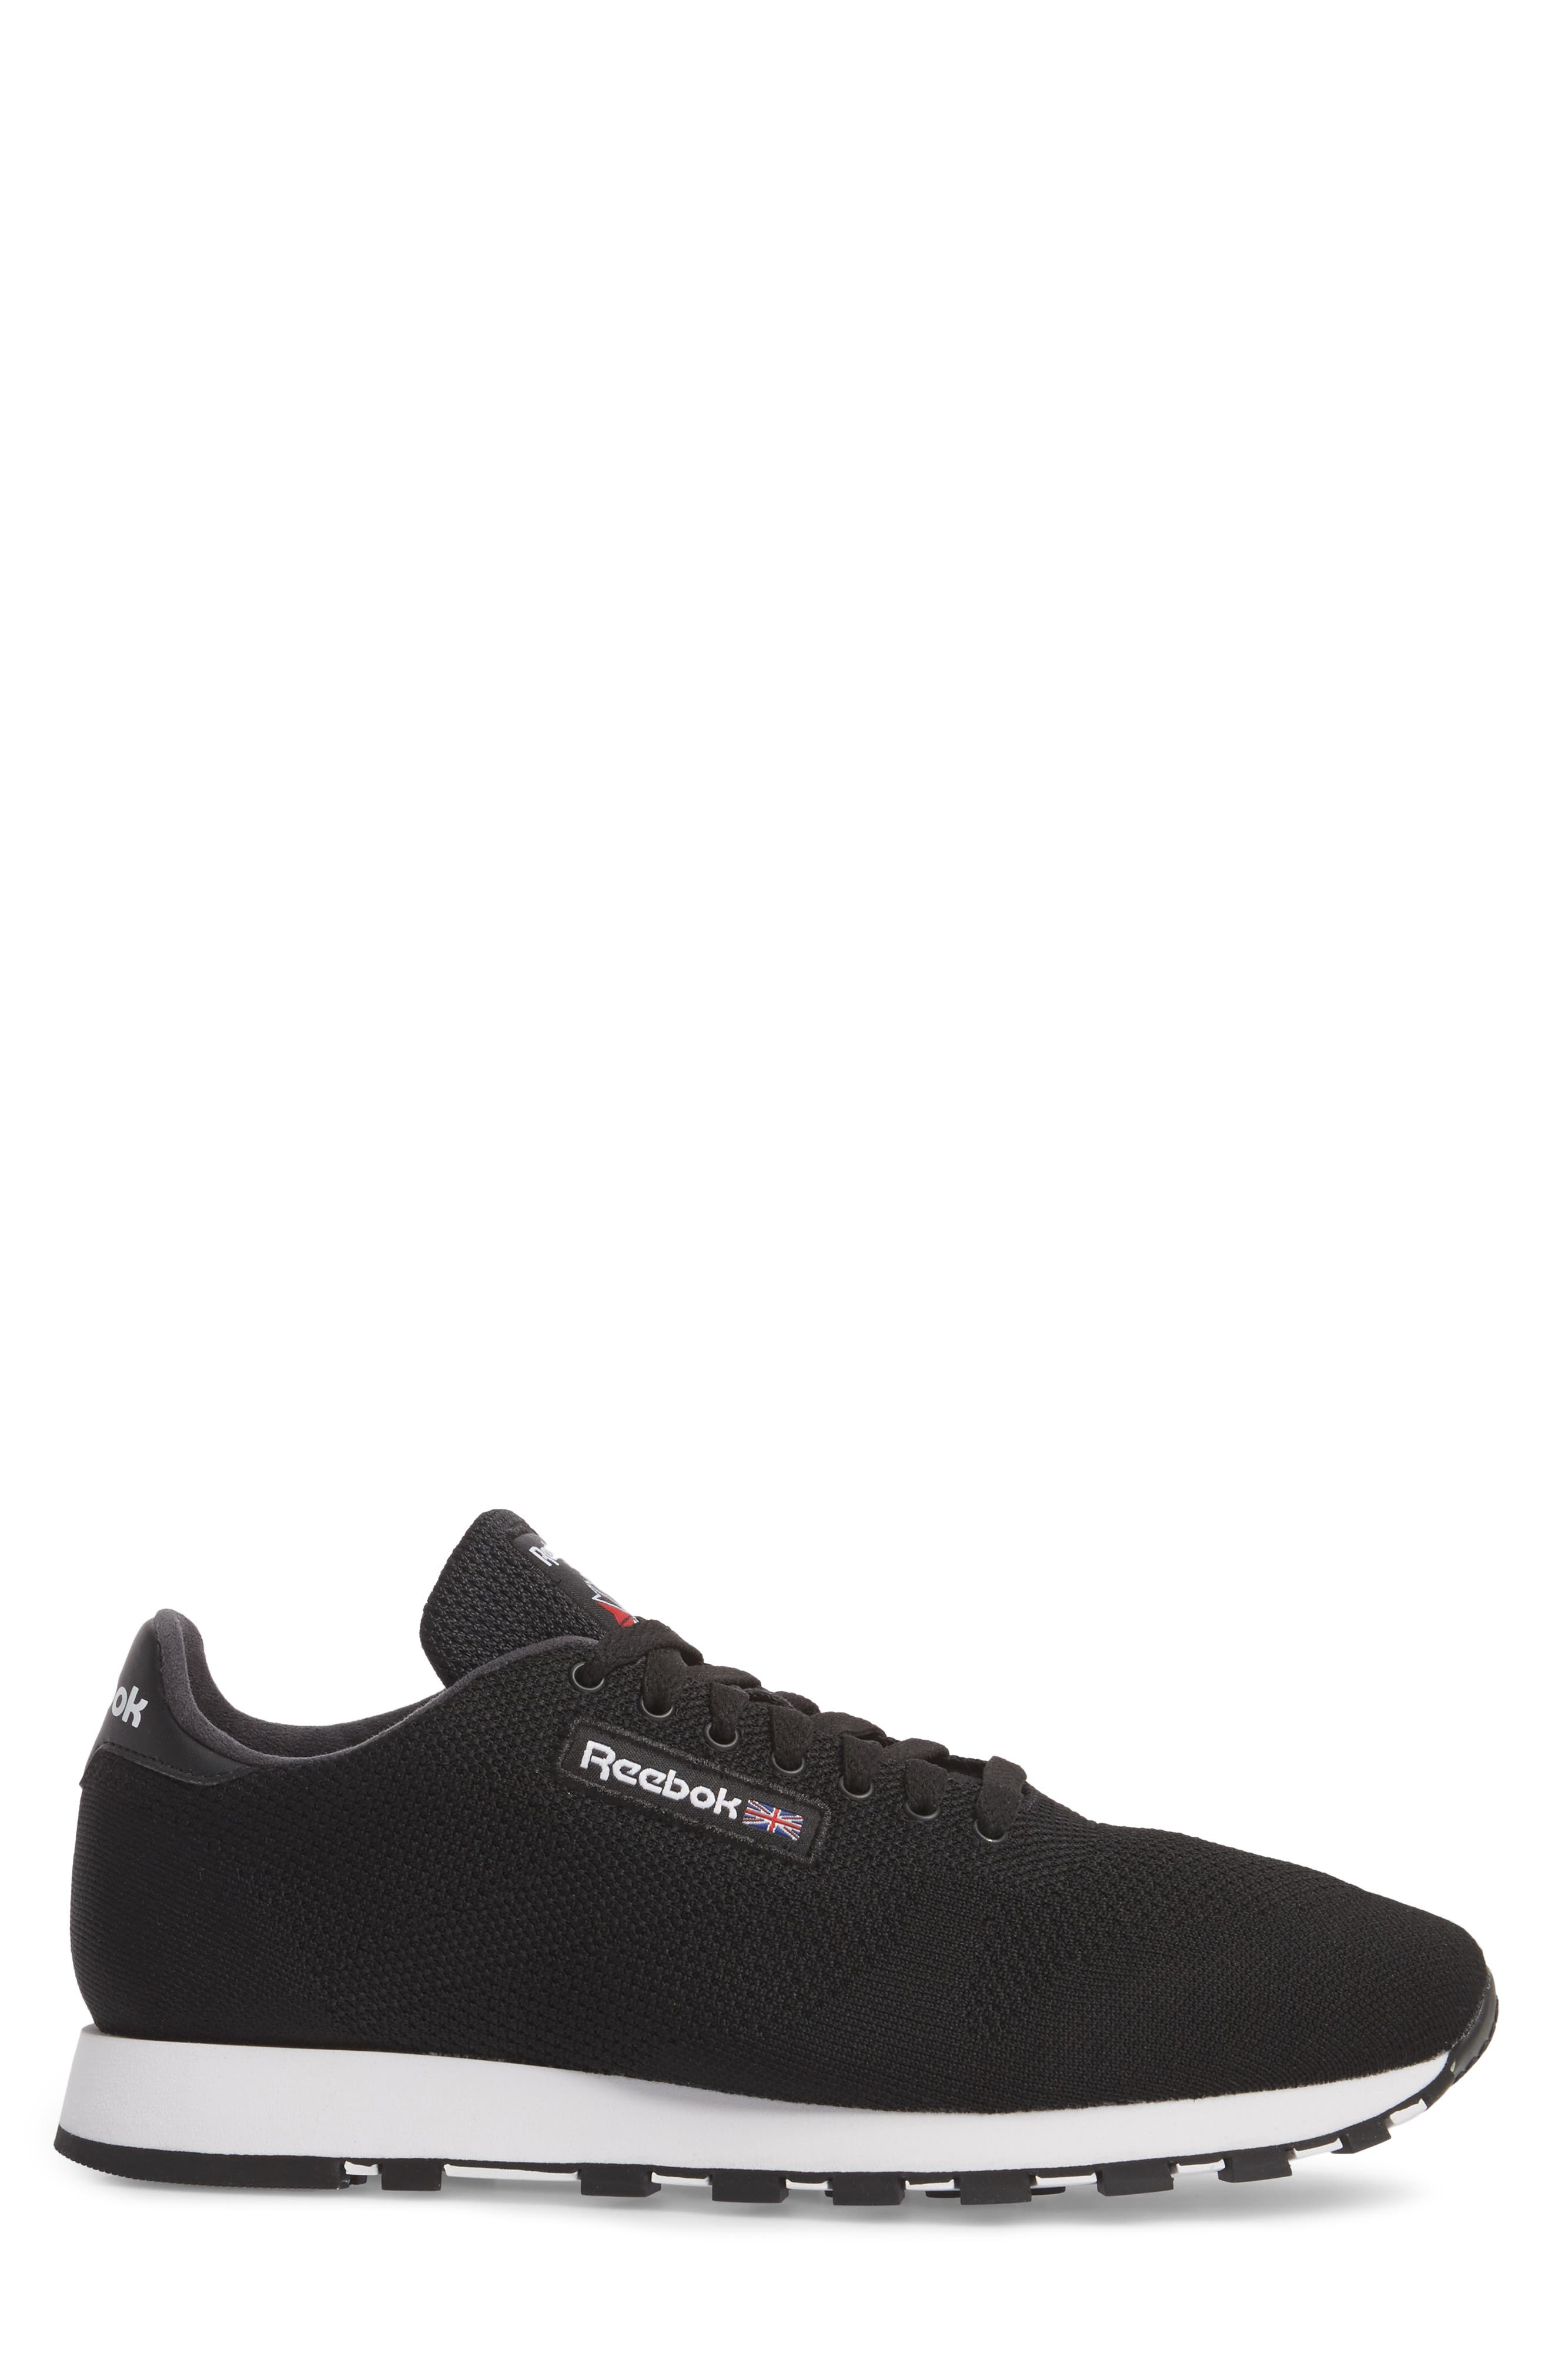 Classic Leather ULTK Sneaker,                             Alternate thumbnail 3, color,                             001